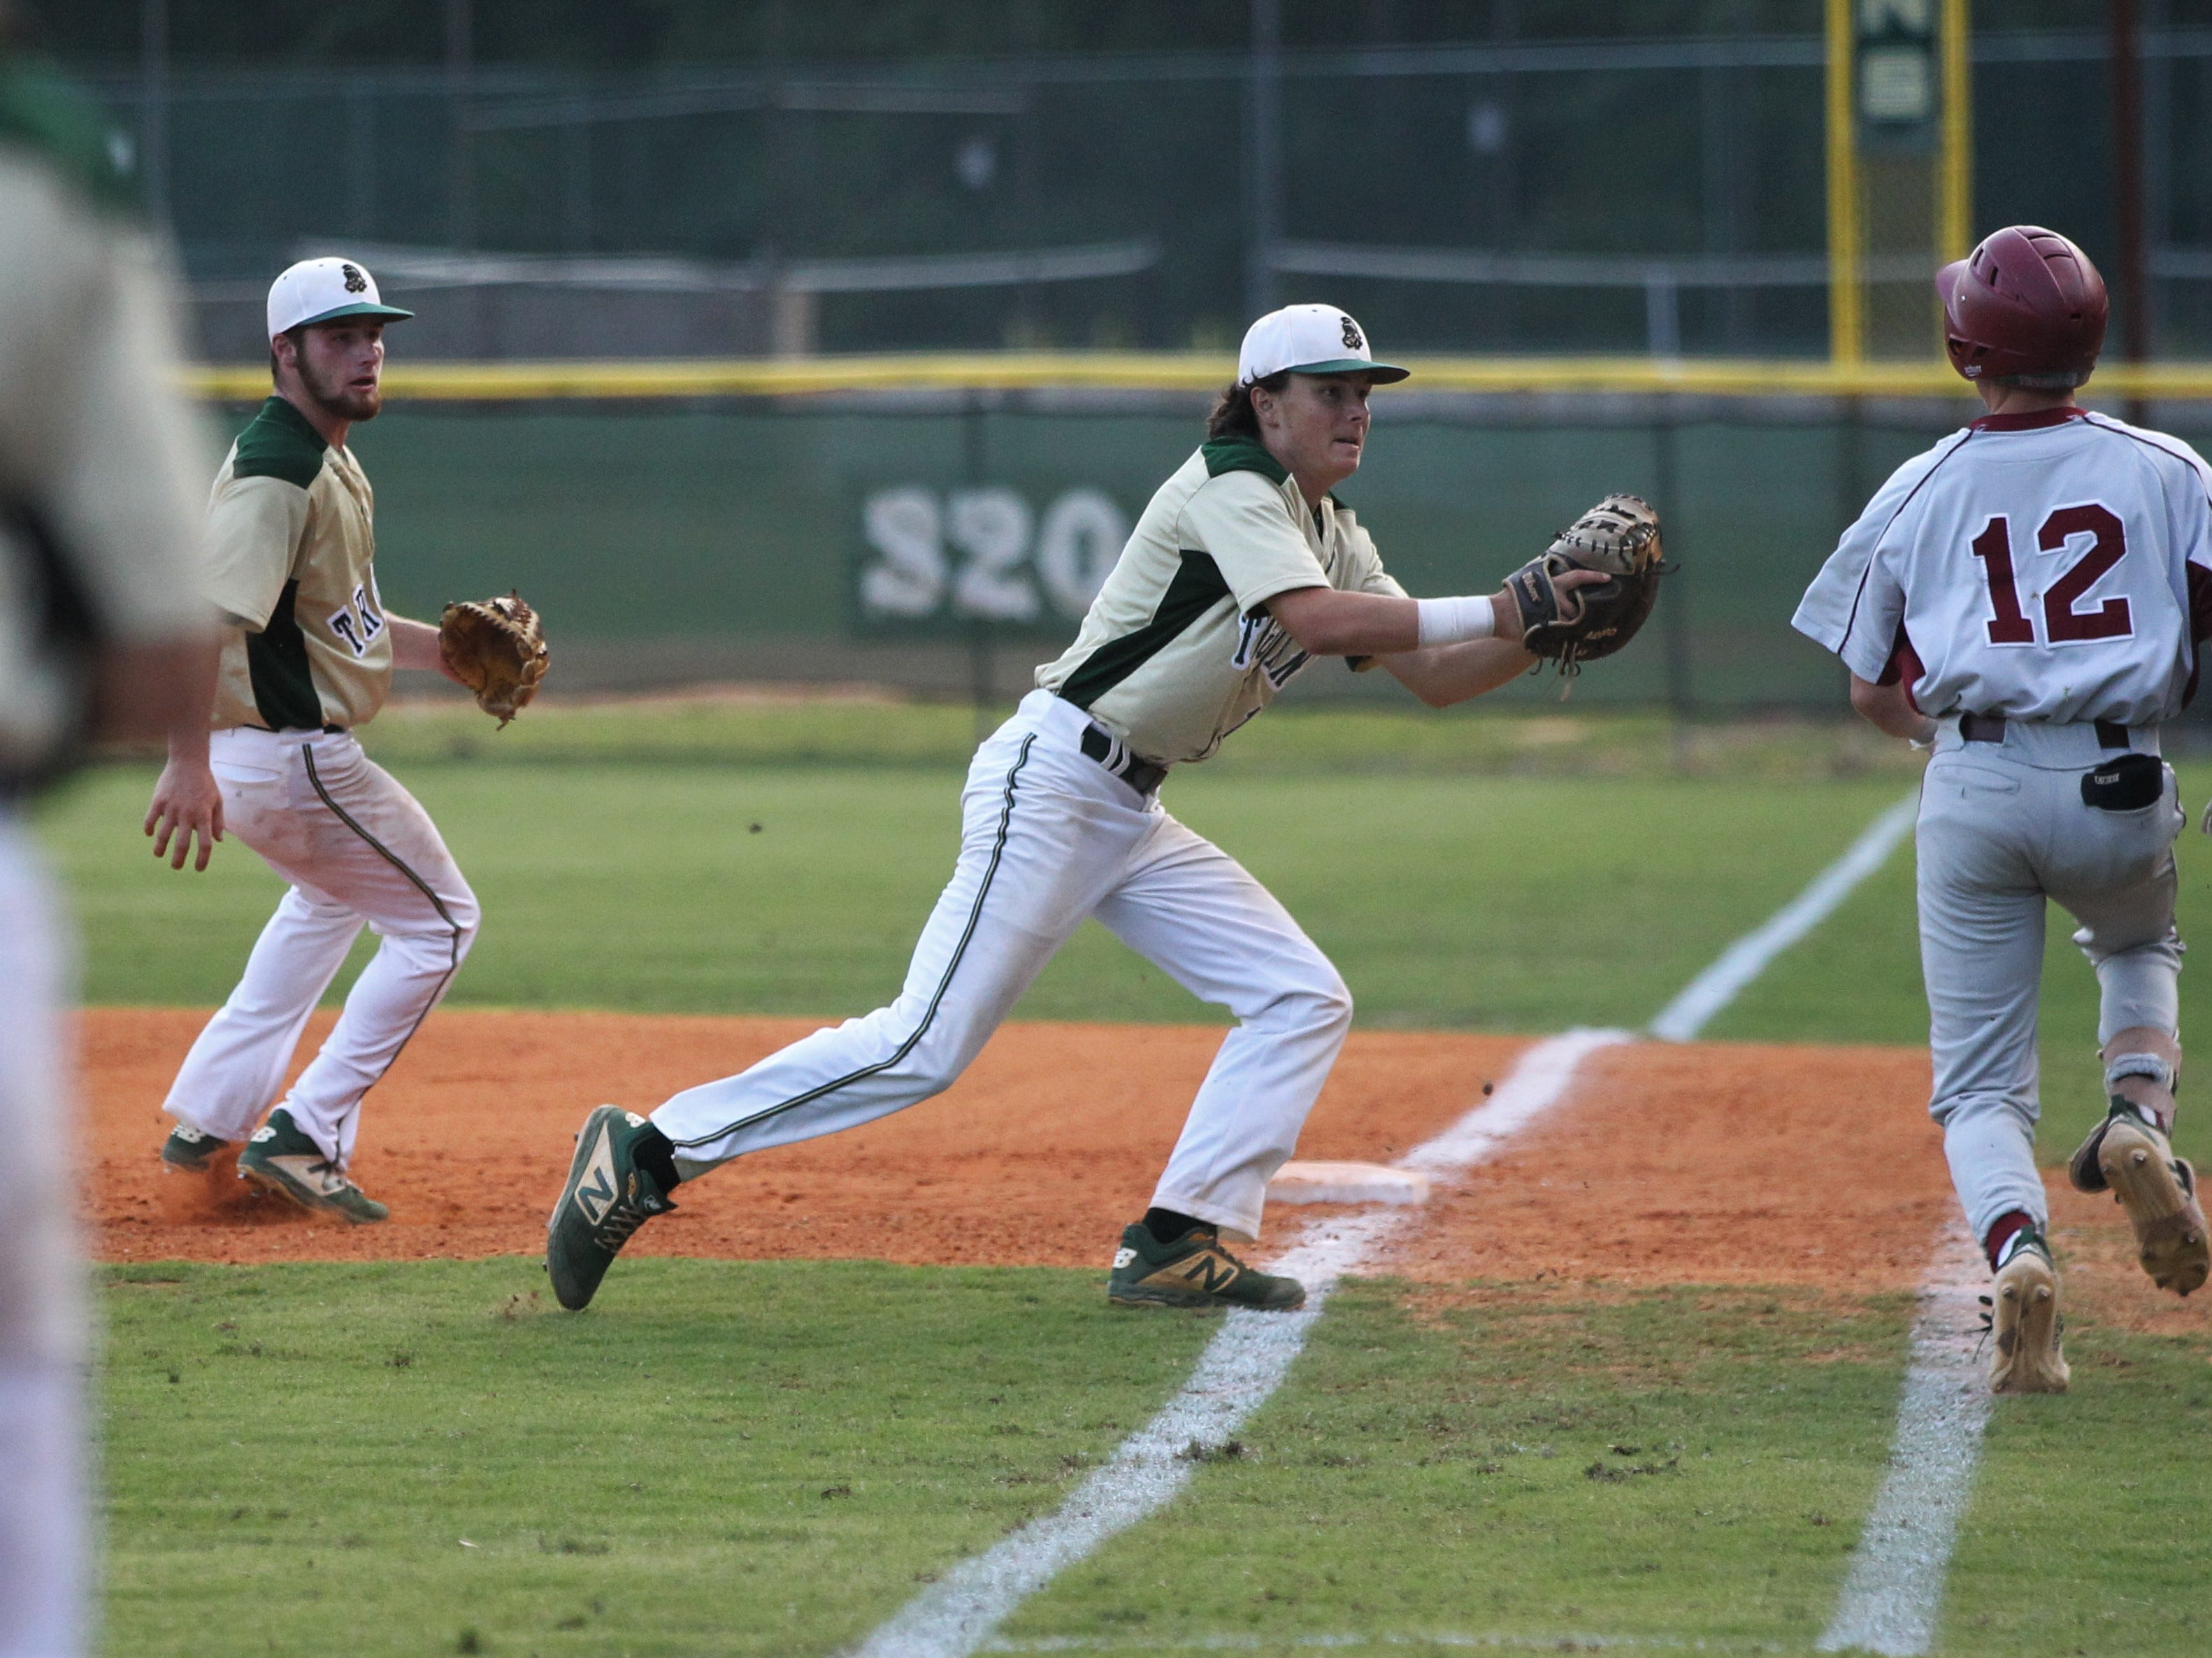 Lincoln first baseman Shawn Snyder tags out Chiles freshman Jaxson West on a grounder as Lincoln baseball beat Chiles 5-4  in 10 innings during a District 2-8A championship game on Thursday, May 9, 2019.